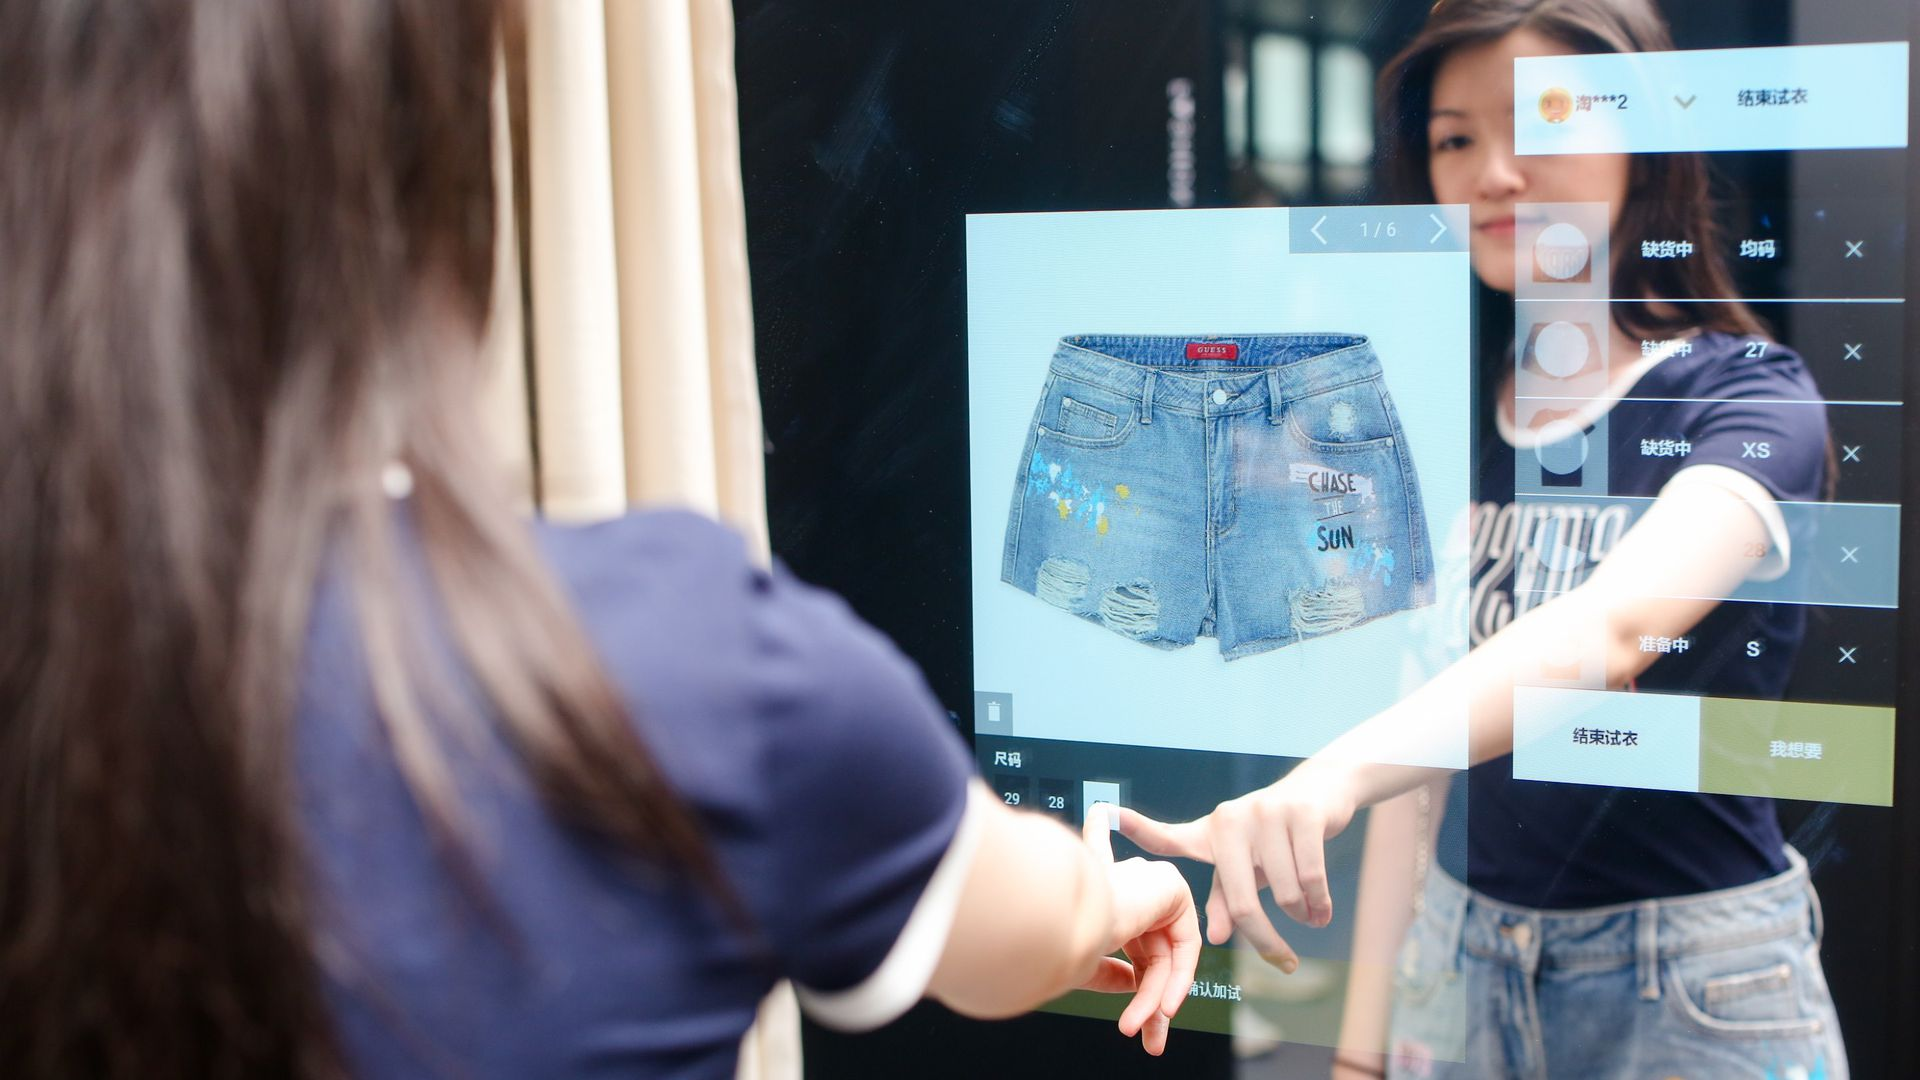 Automated fashion is now a reality in new Chinese store - Axios 031021f0a2